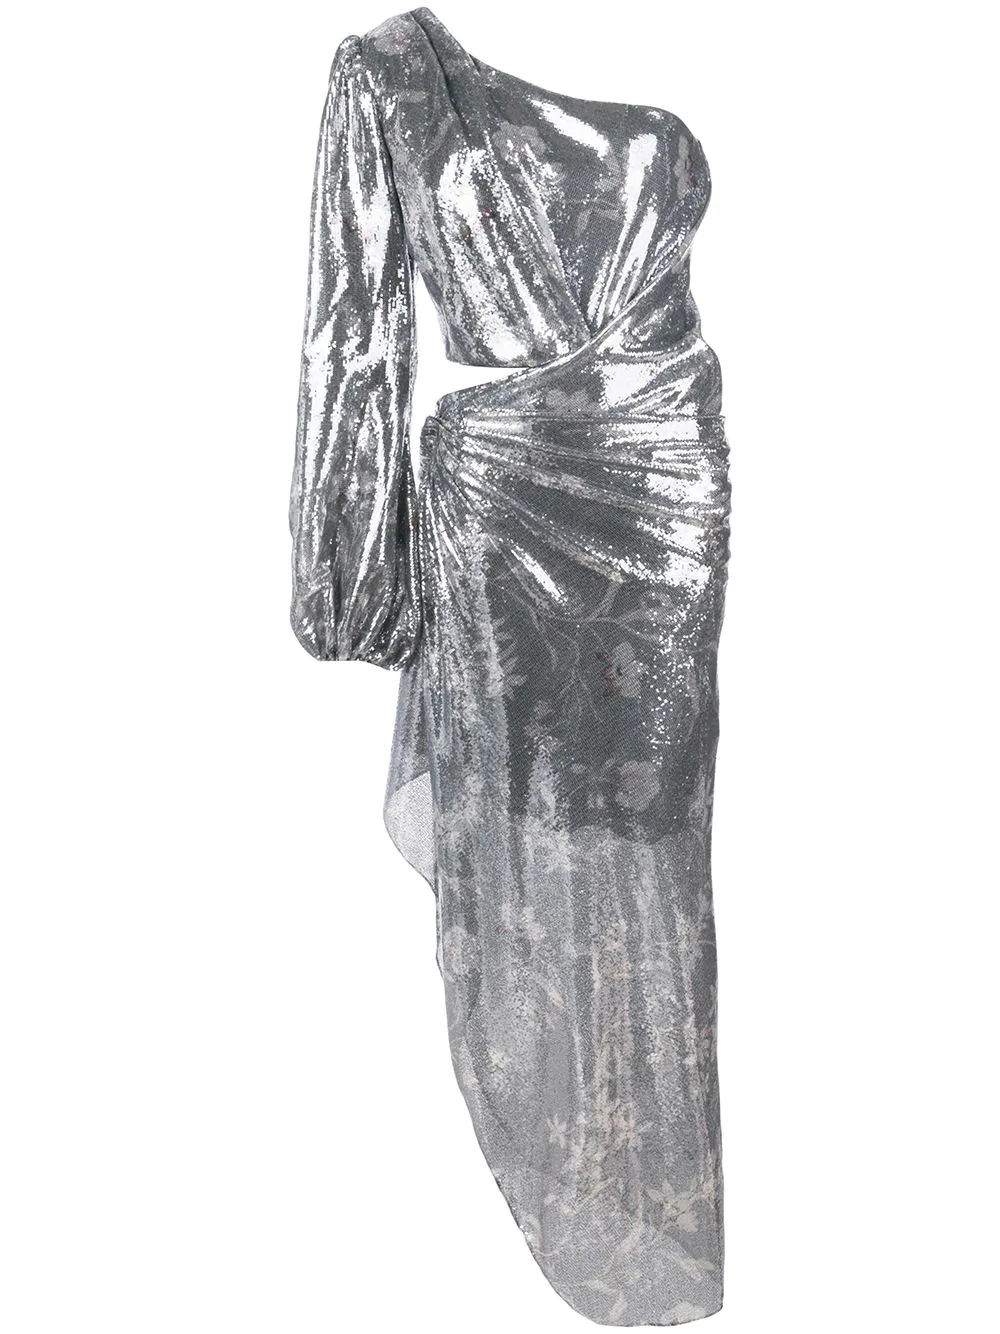 a566a08fdf1 Johanna Ortiz Glassy Orchid One-Sleeve Sequin Cocktail Dress In Silver